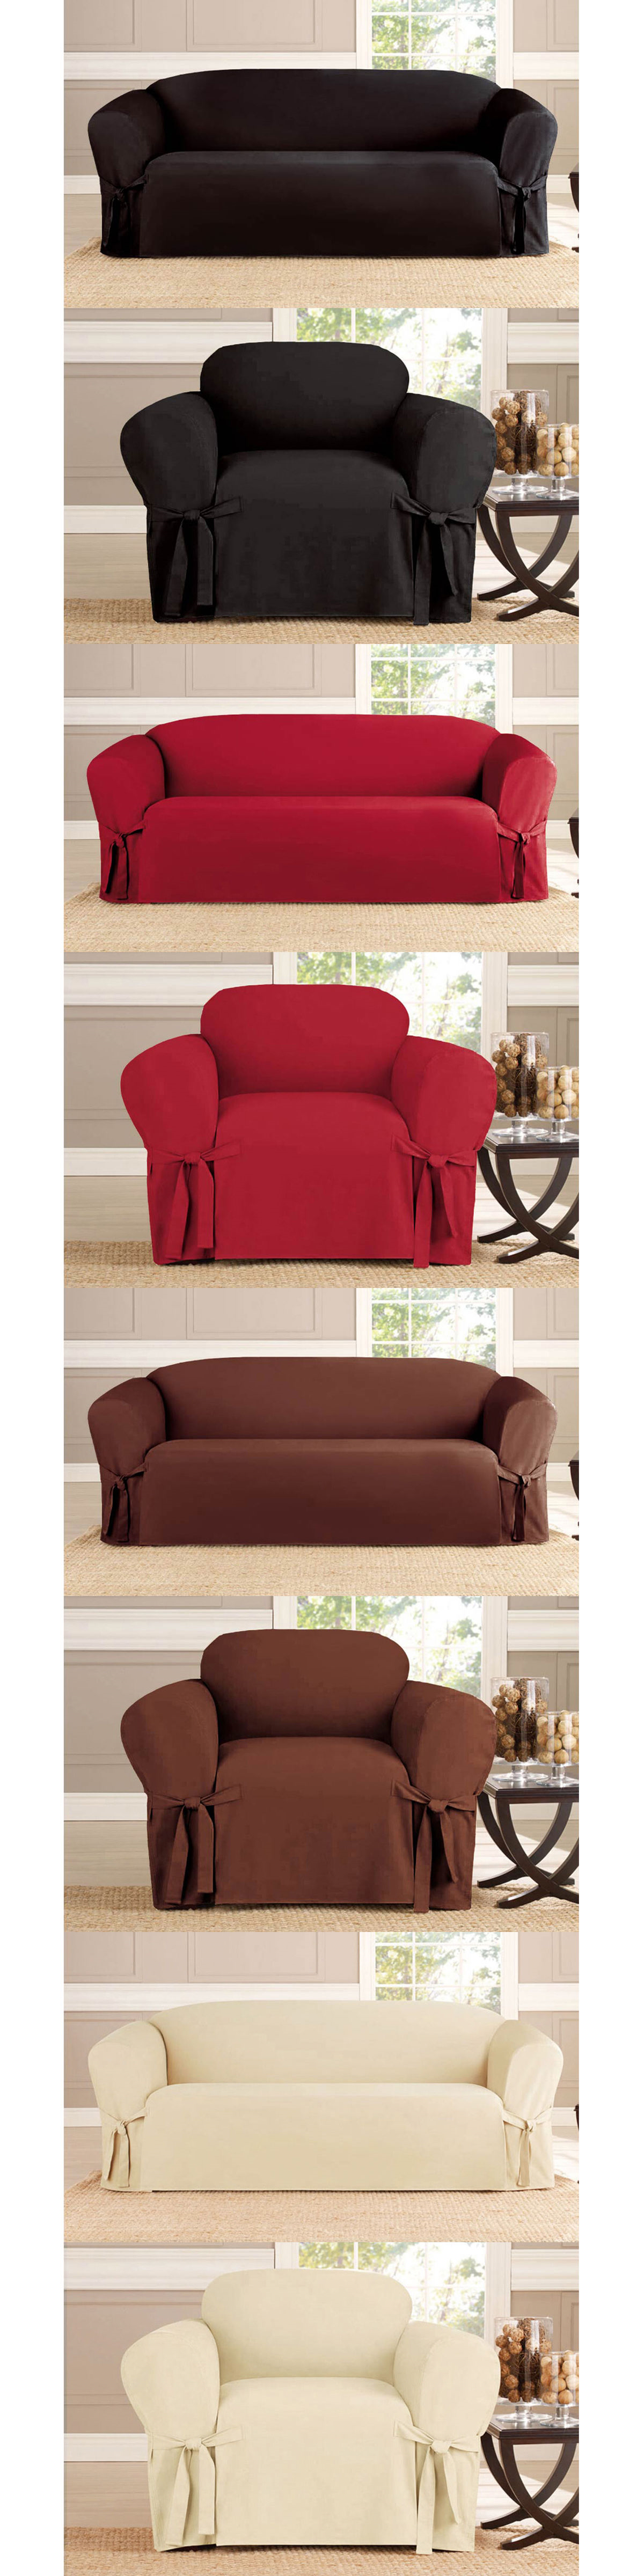 Slipcovers Bundle 2 Piece Sofa And Chair Micro Suede